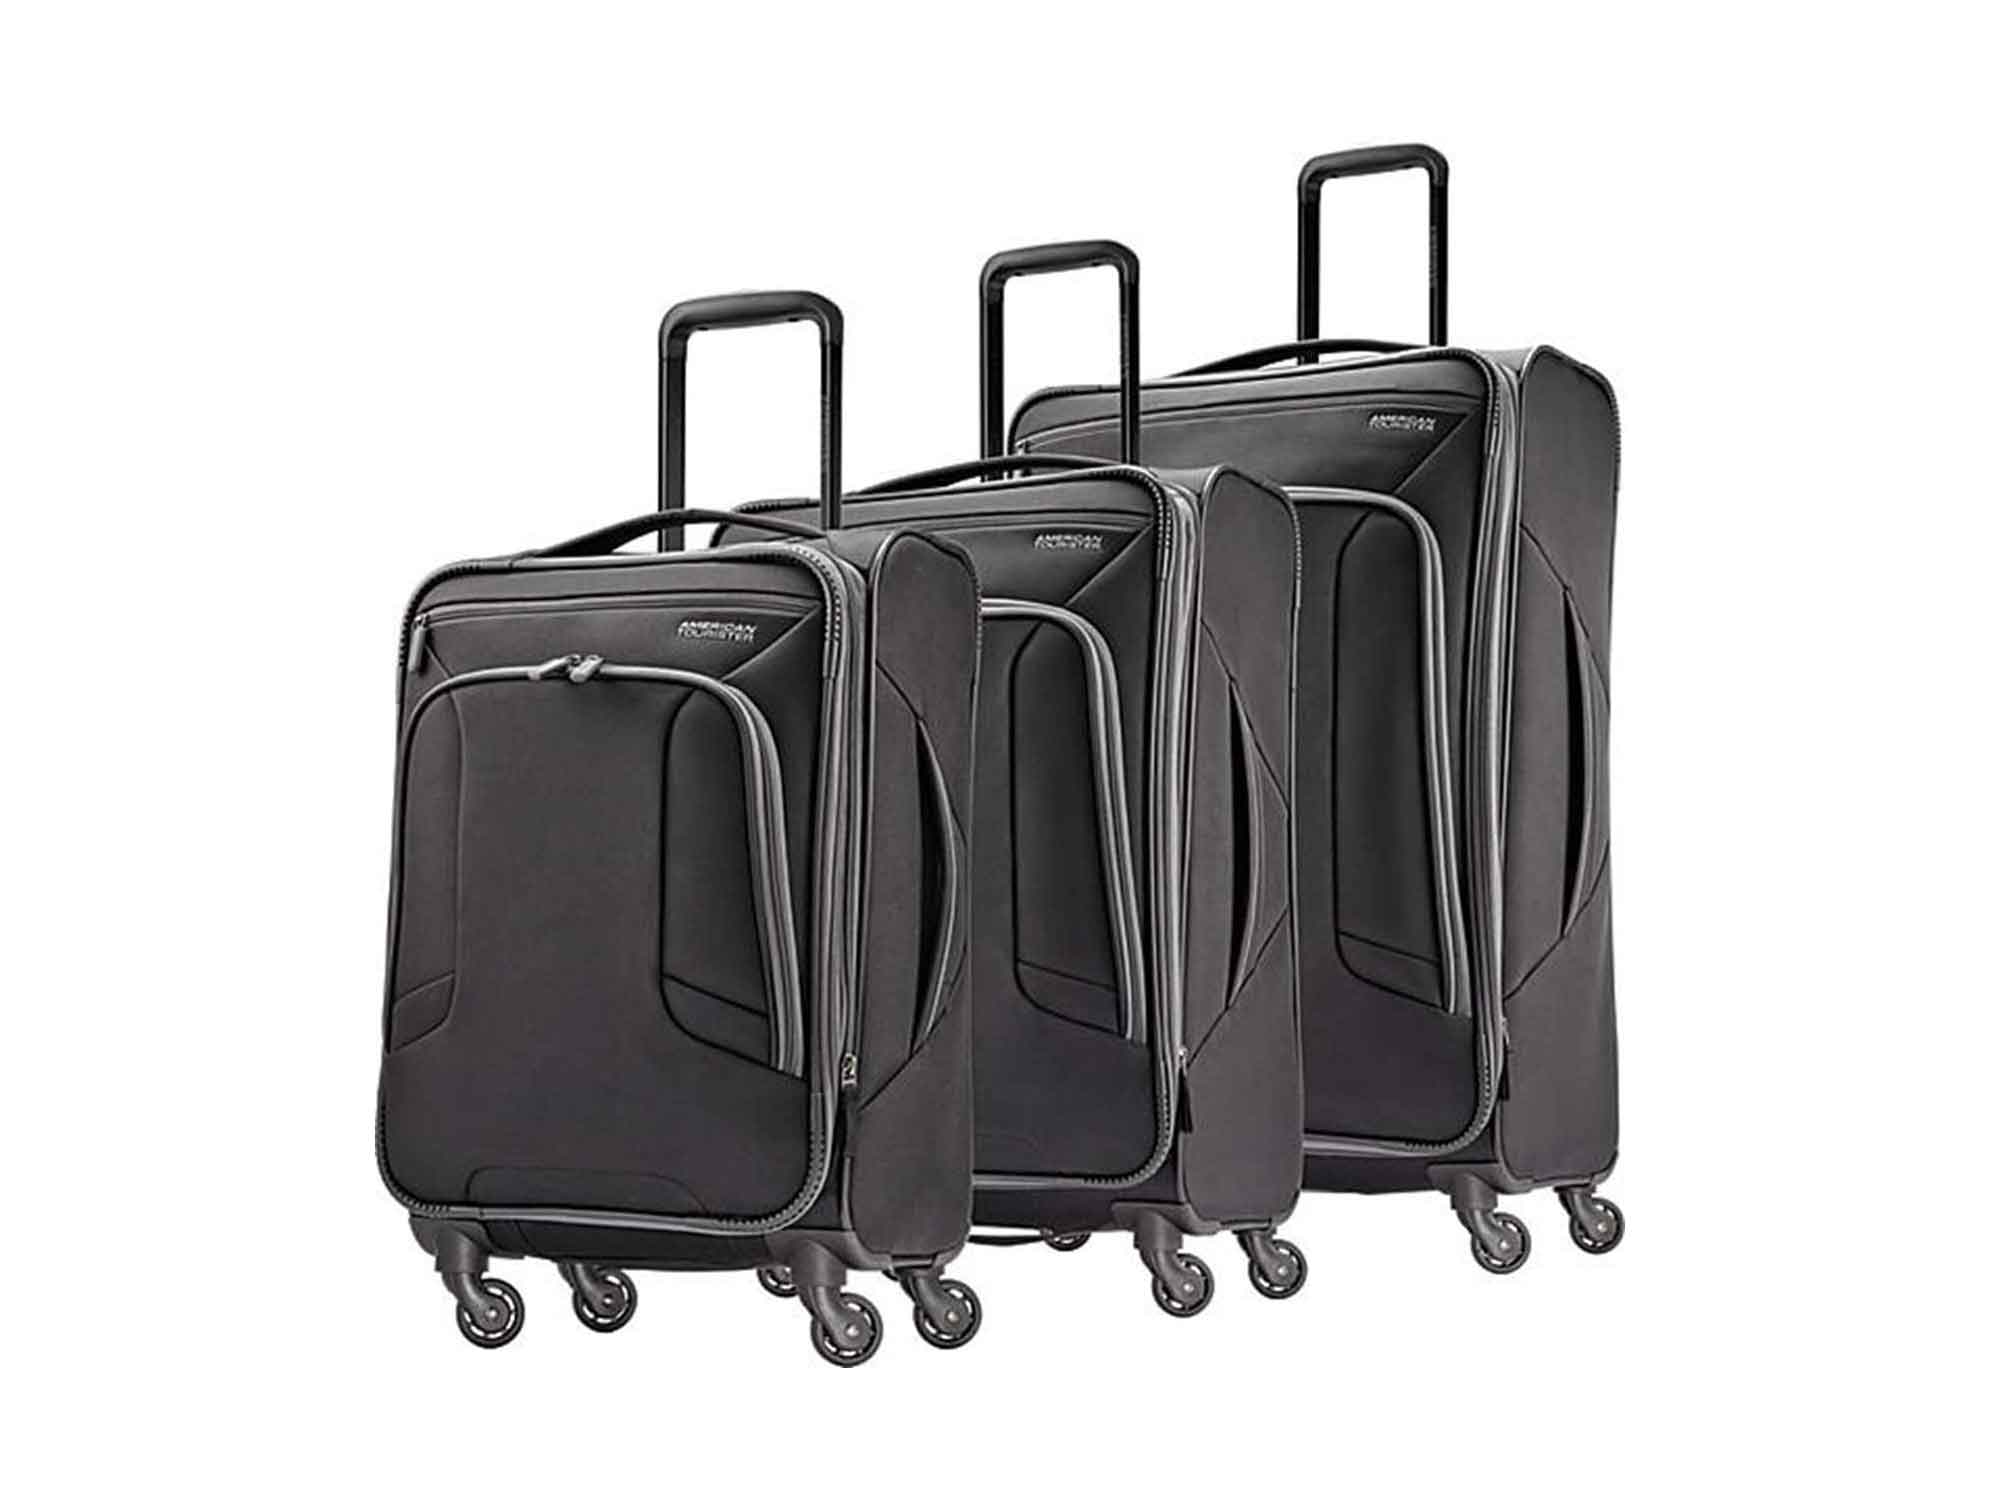 American Tourister 4 Kix Expandable Softside Luggage with Spinner Wheels, Black/Grey, 3-Piece Set